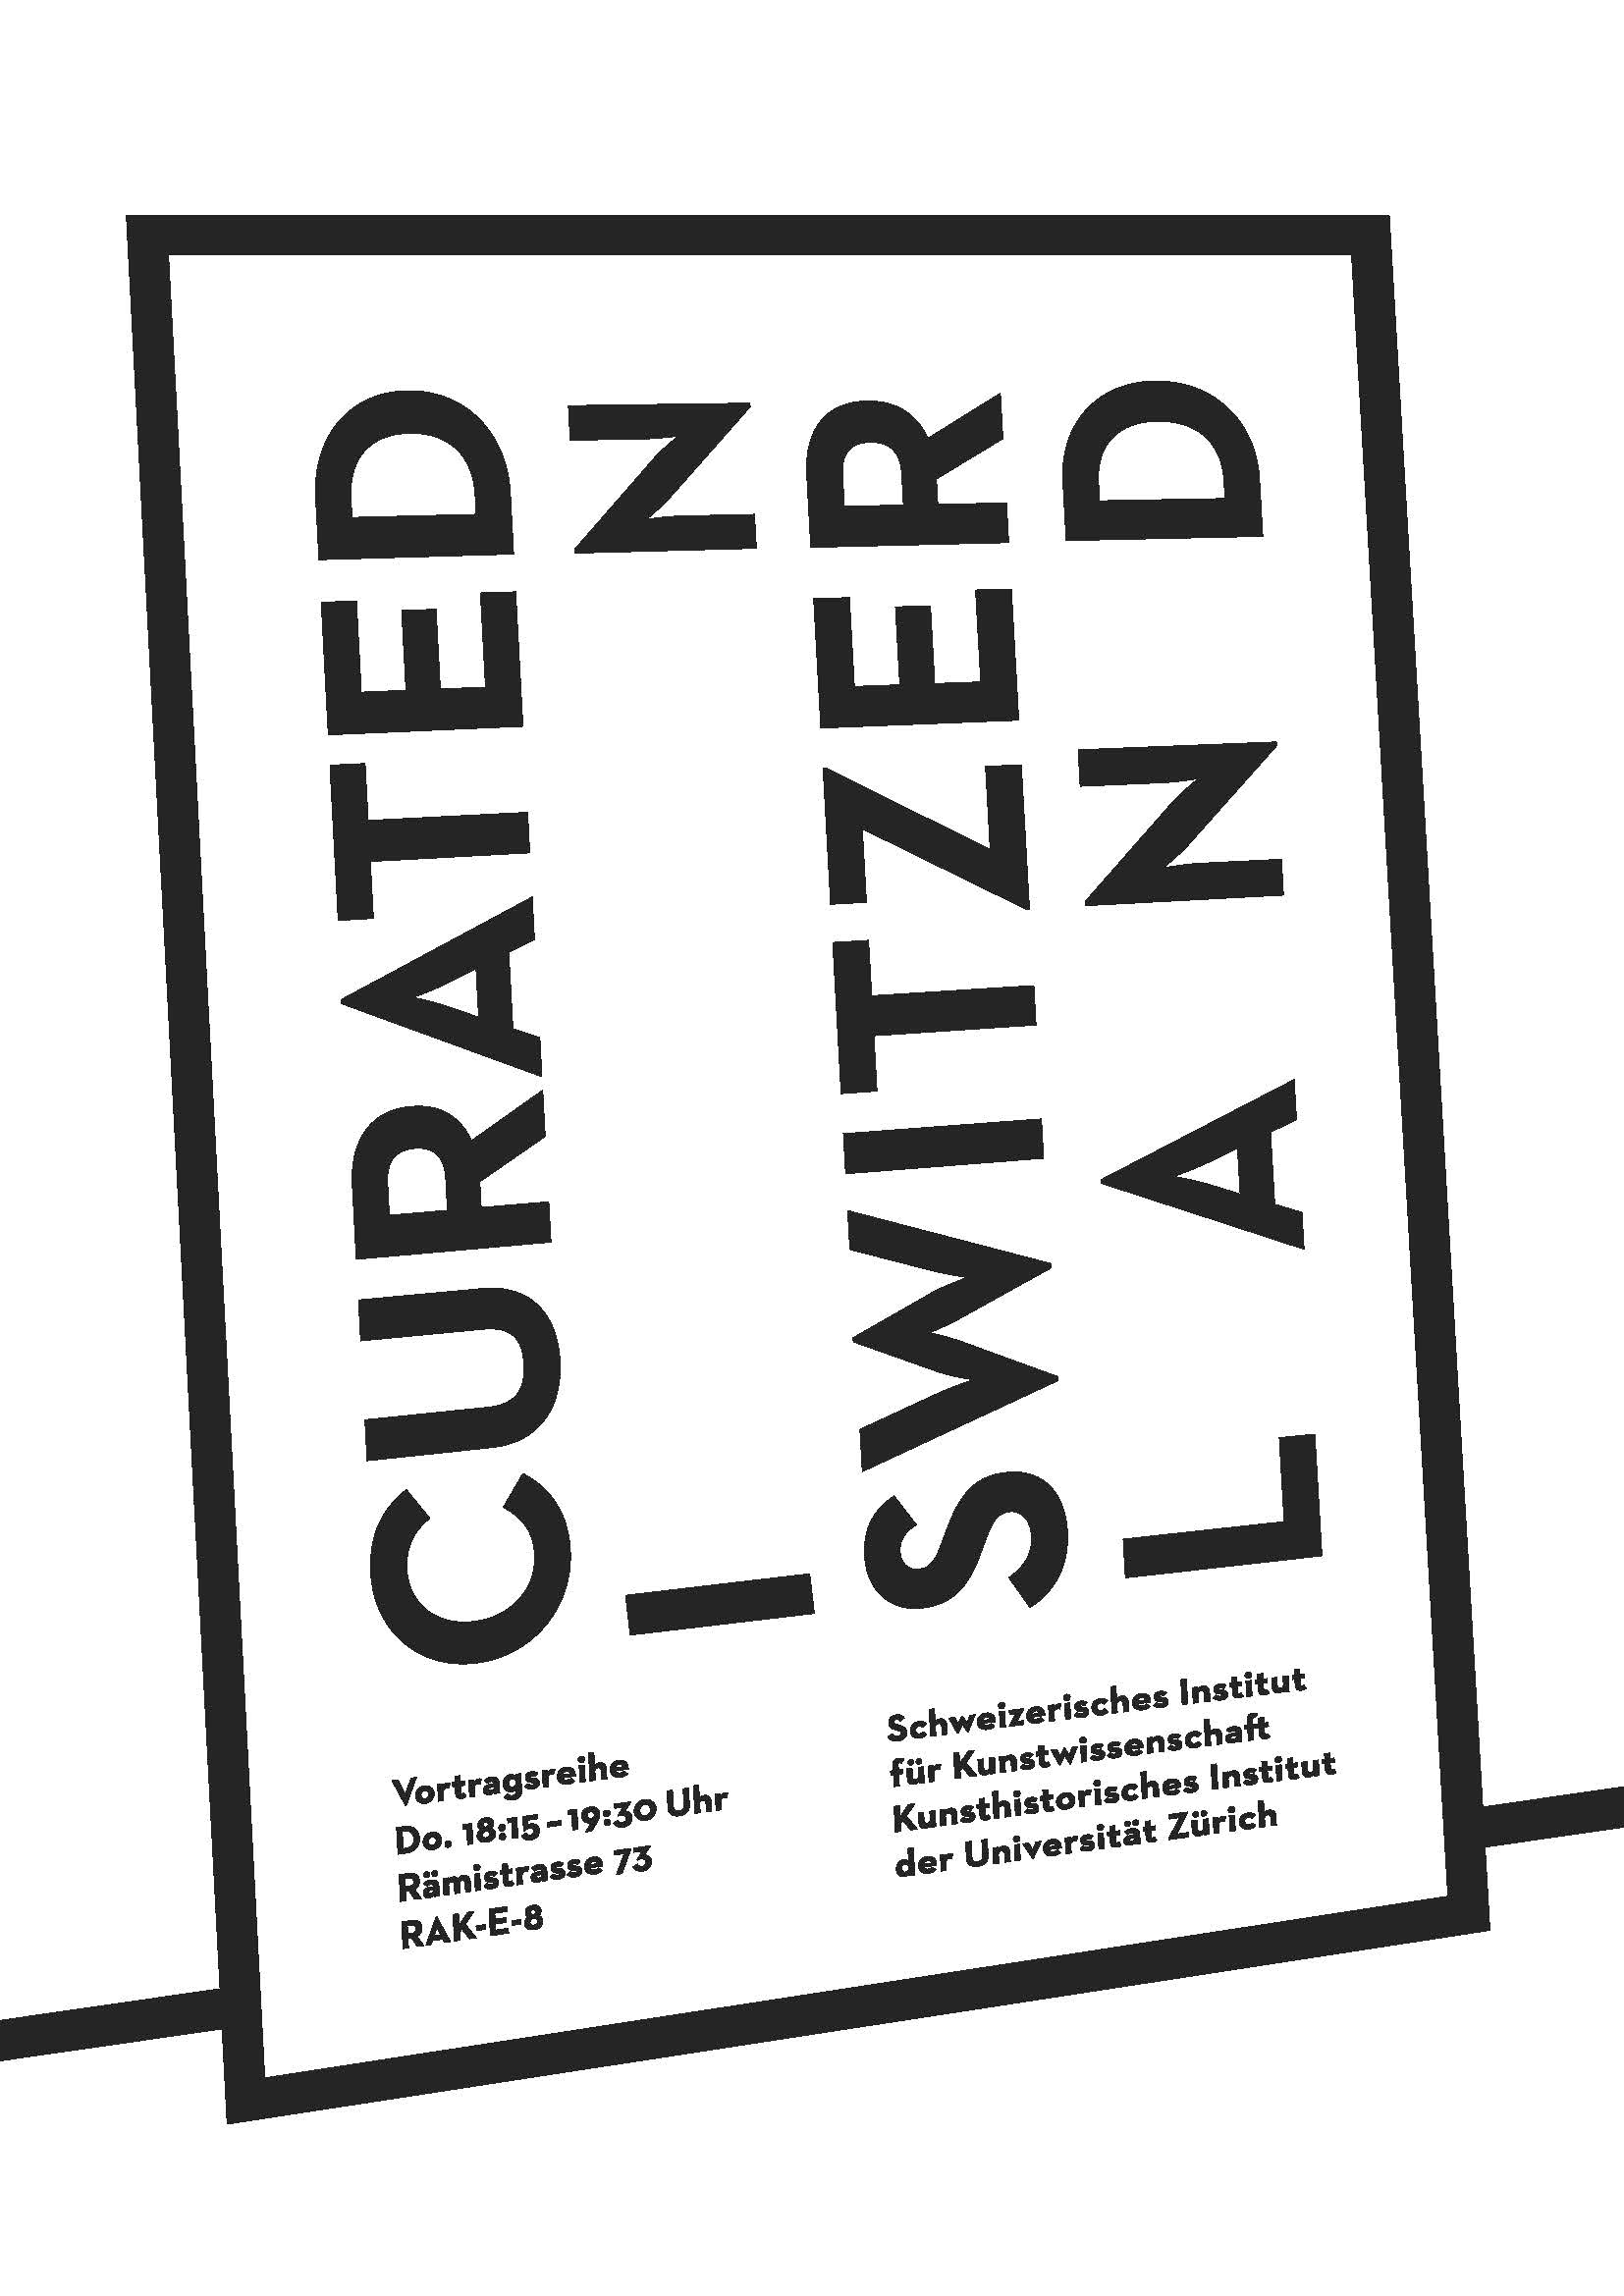 Curated in Switzerland